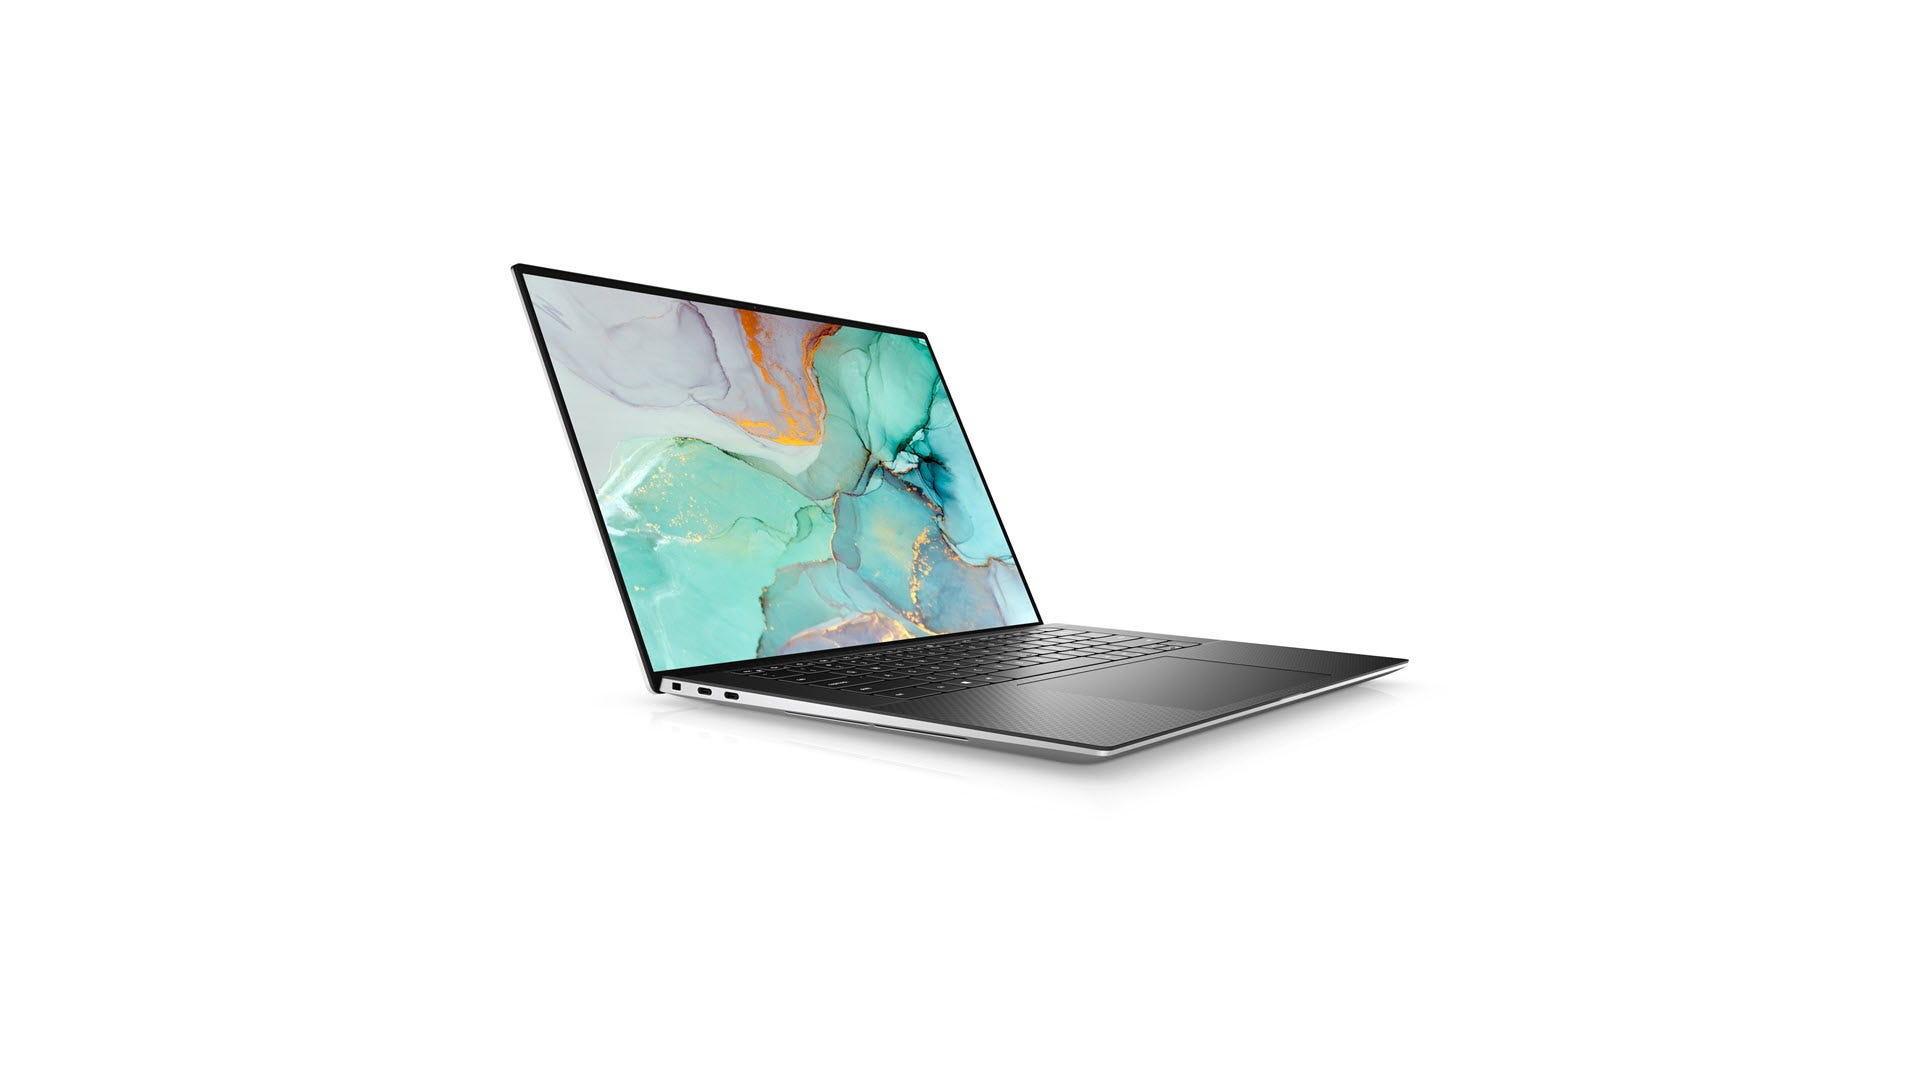 A Dell XPS 15 against a white backdrop.